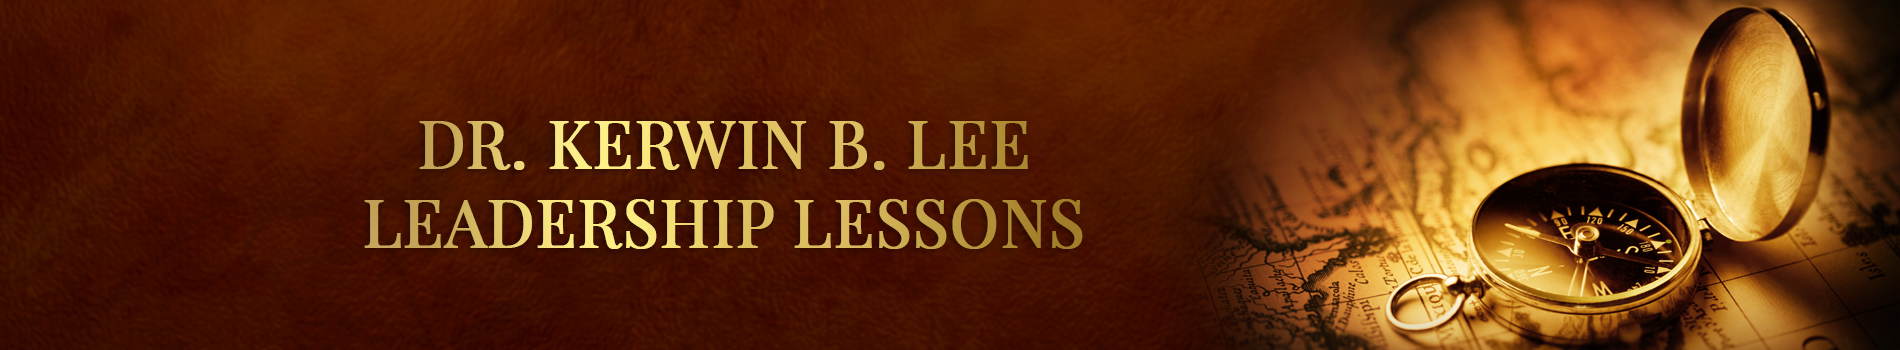 Kerwin Lee Leadership Lessons